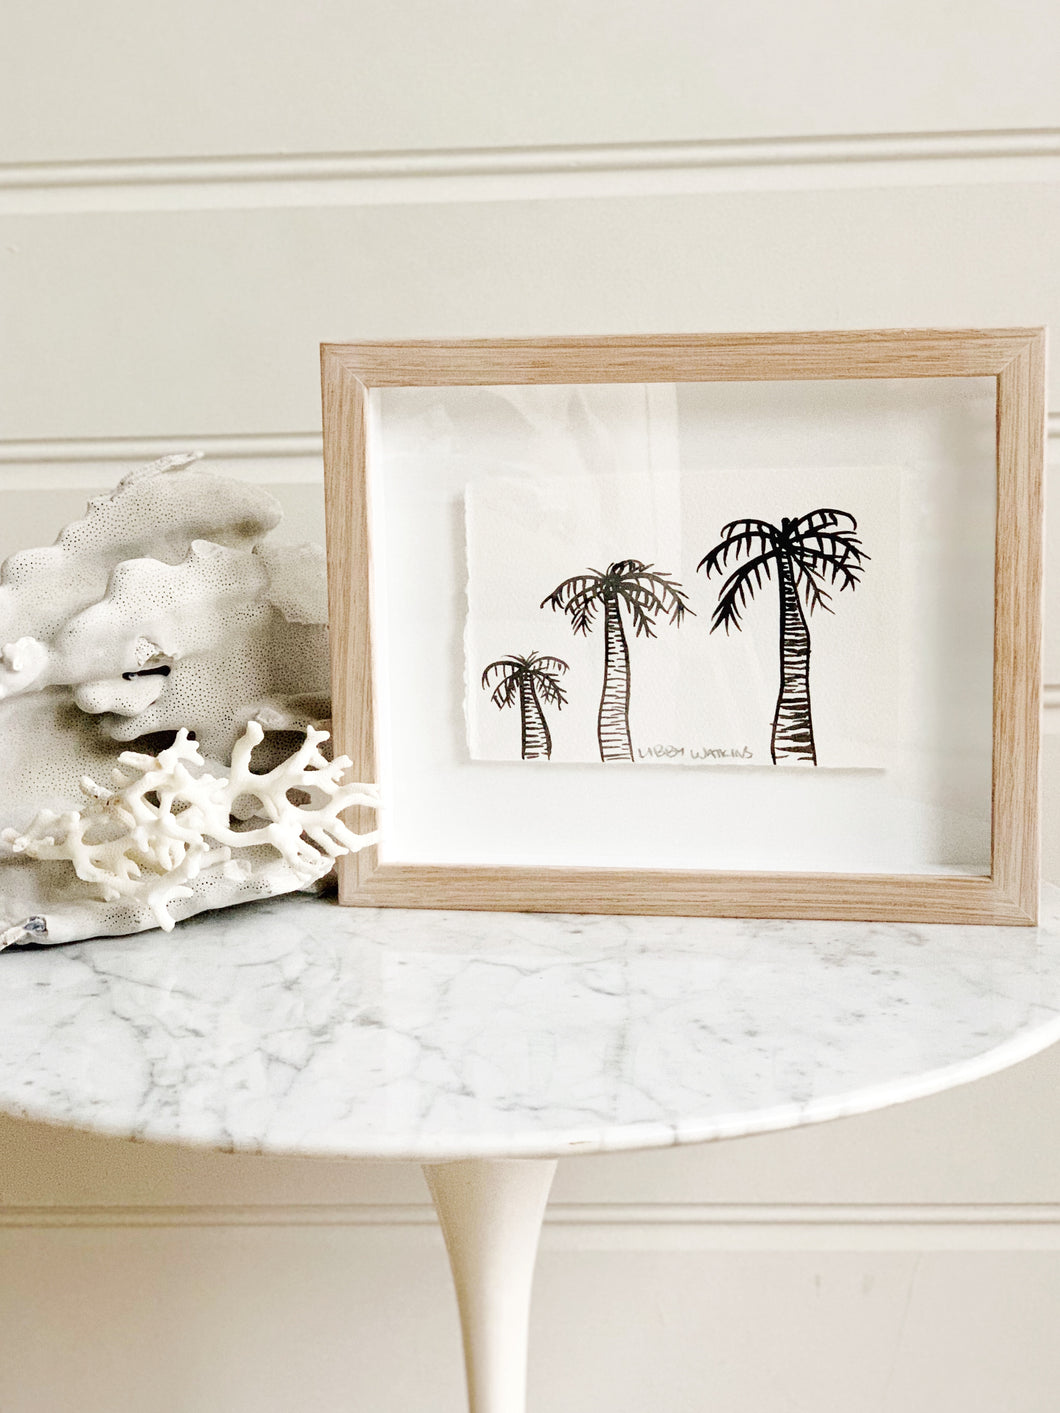 Signature Libby Watkins | Mini Ink Palm | 91809 | Made to order with artist Libby Watkins